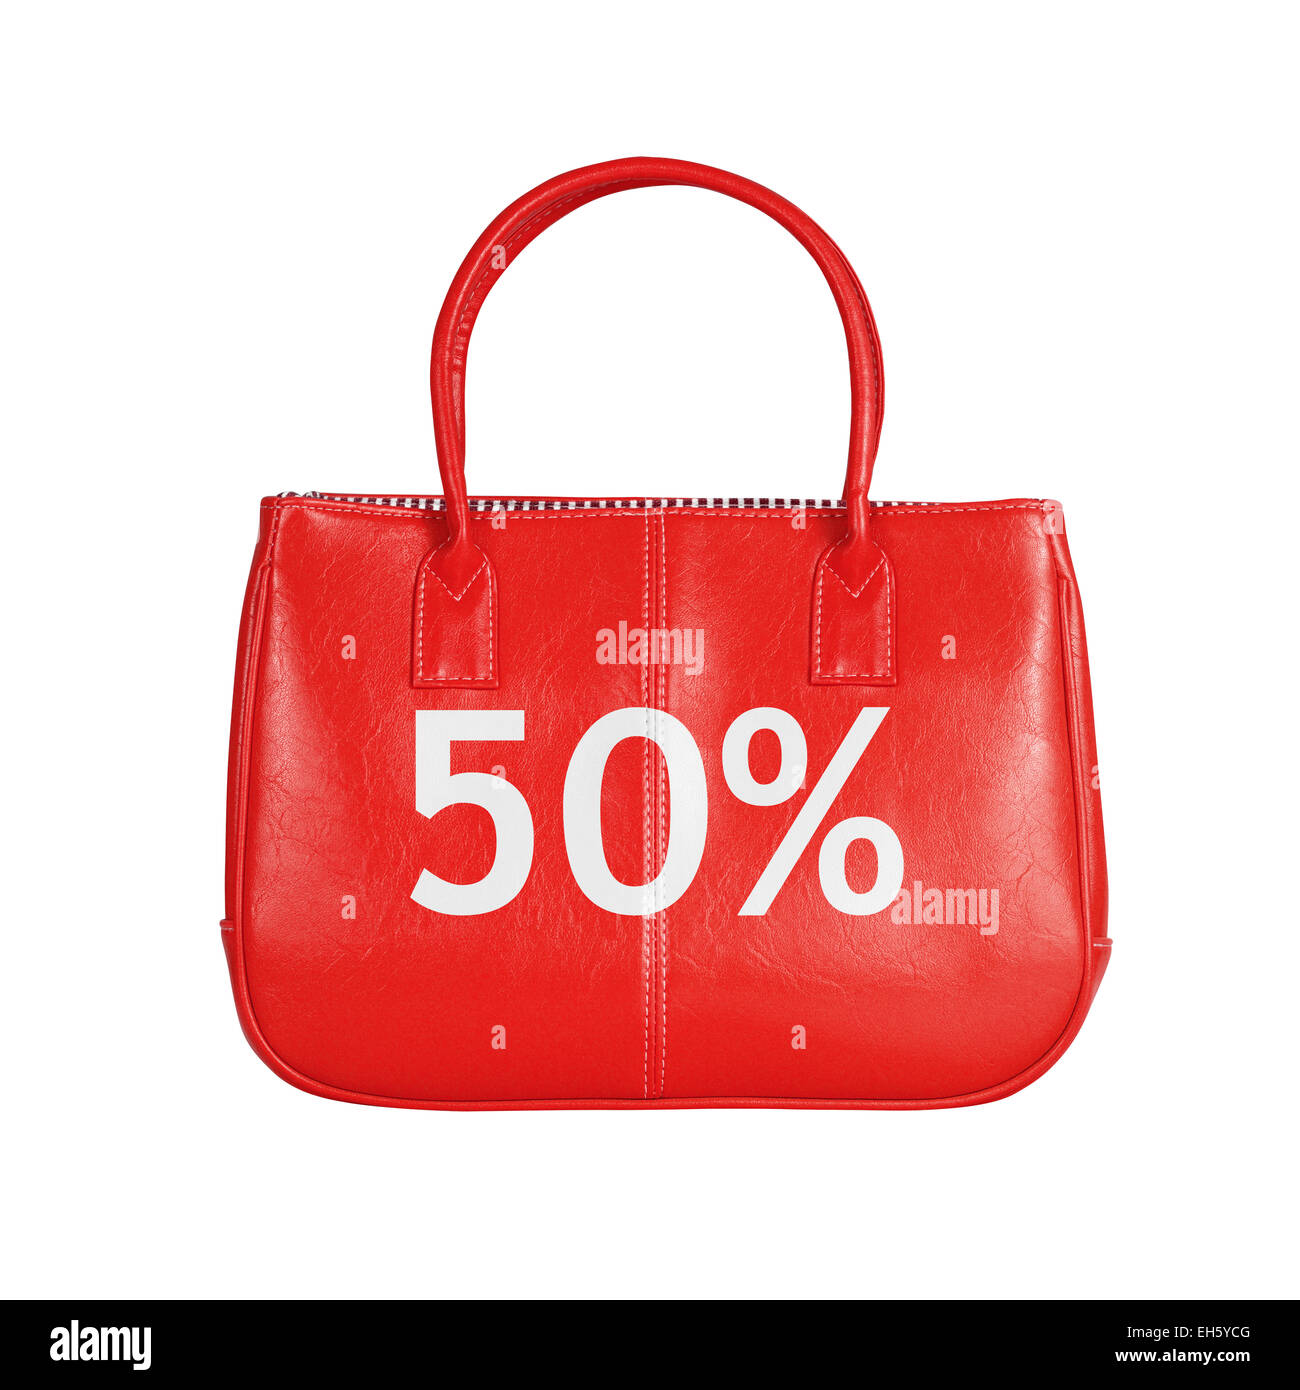 Fifty percent sale bag. Design element isolated on white background with clipping path - Stock Image